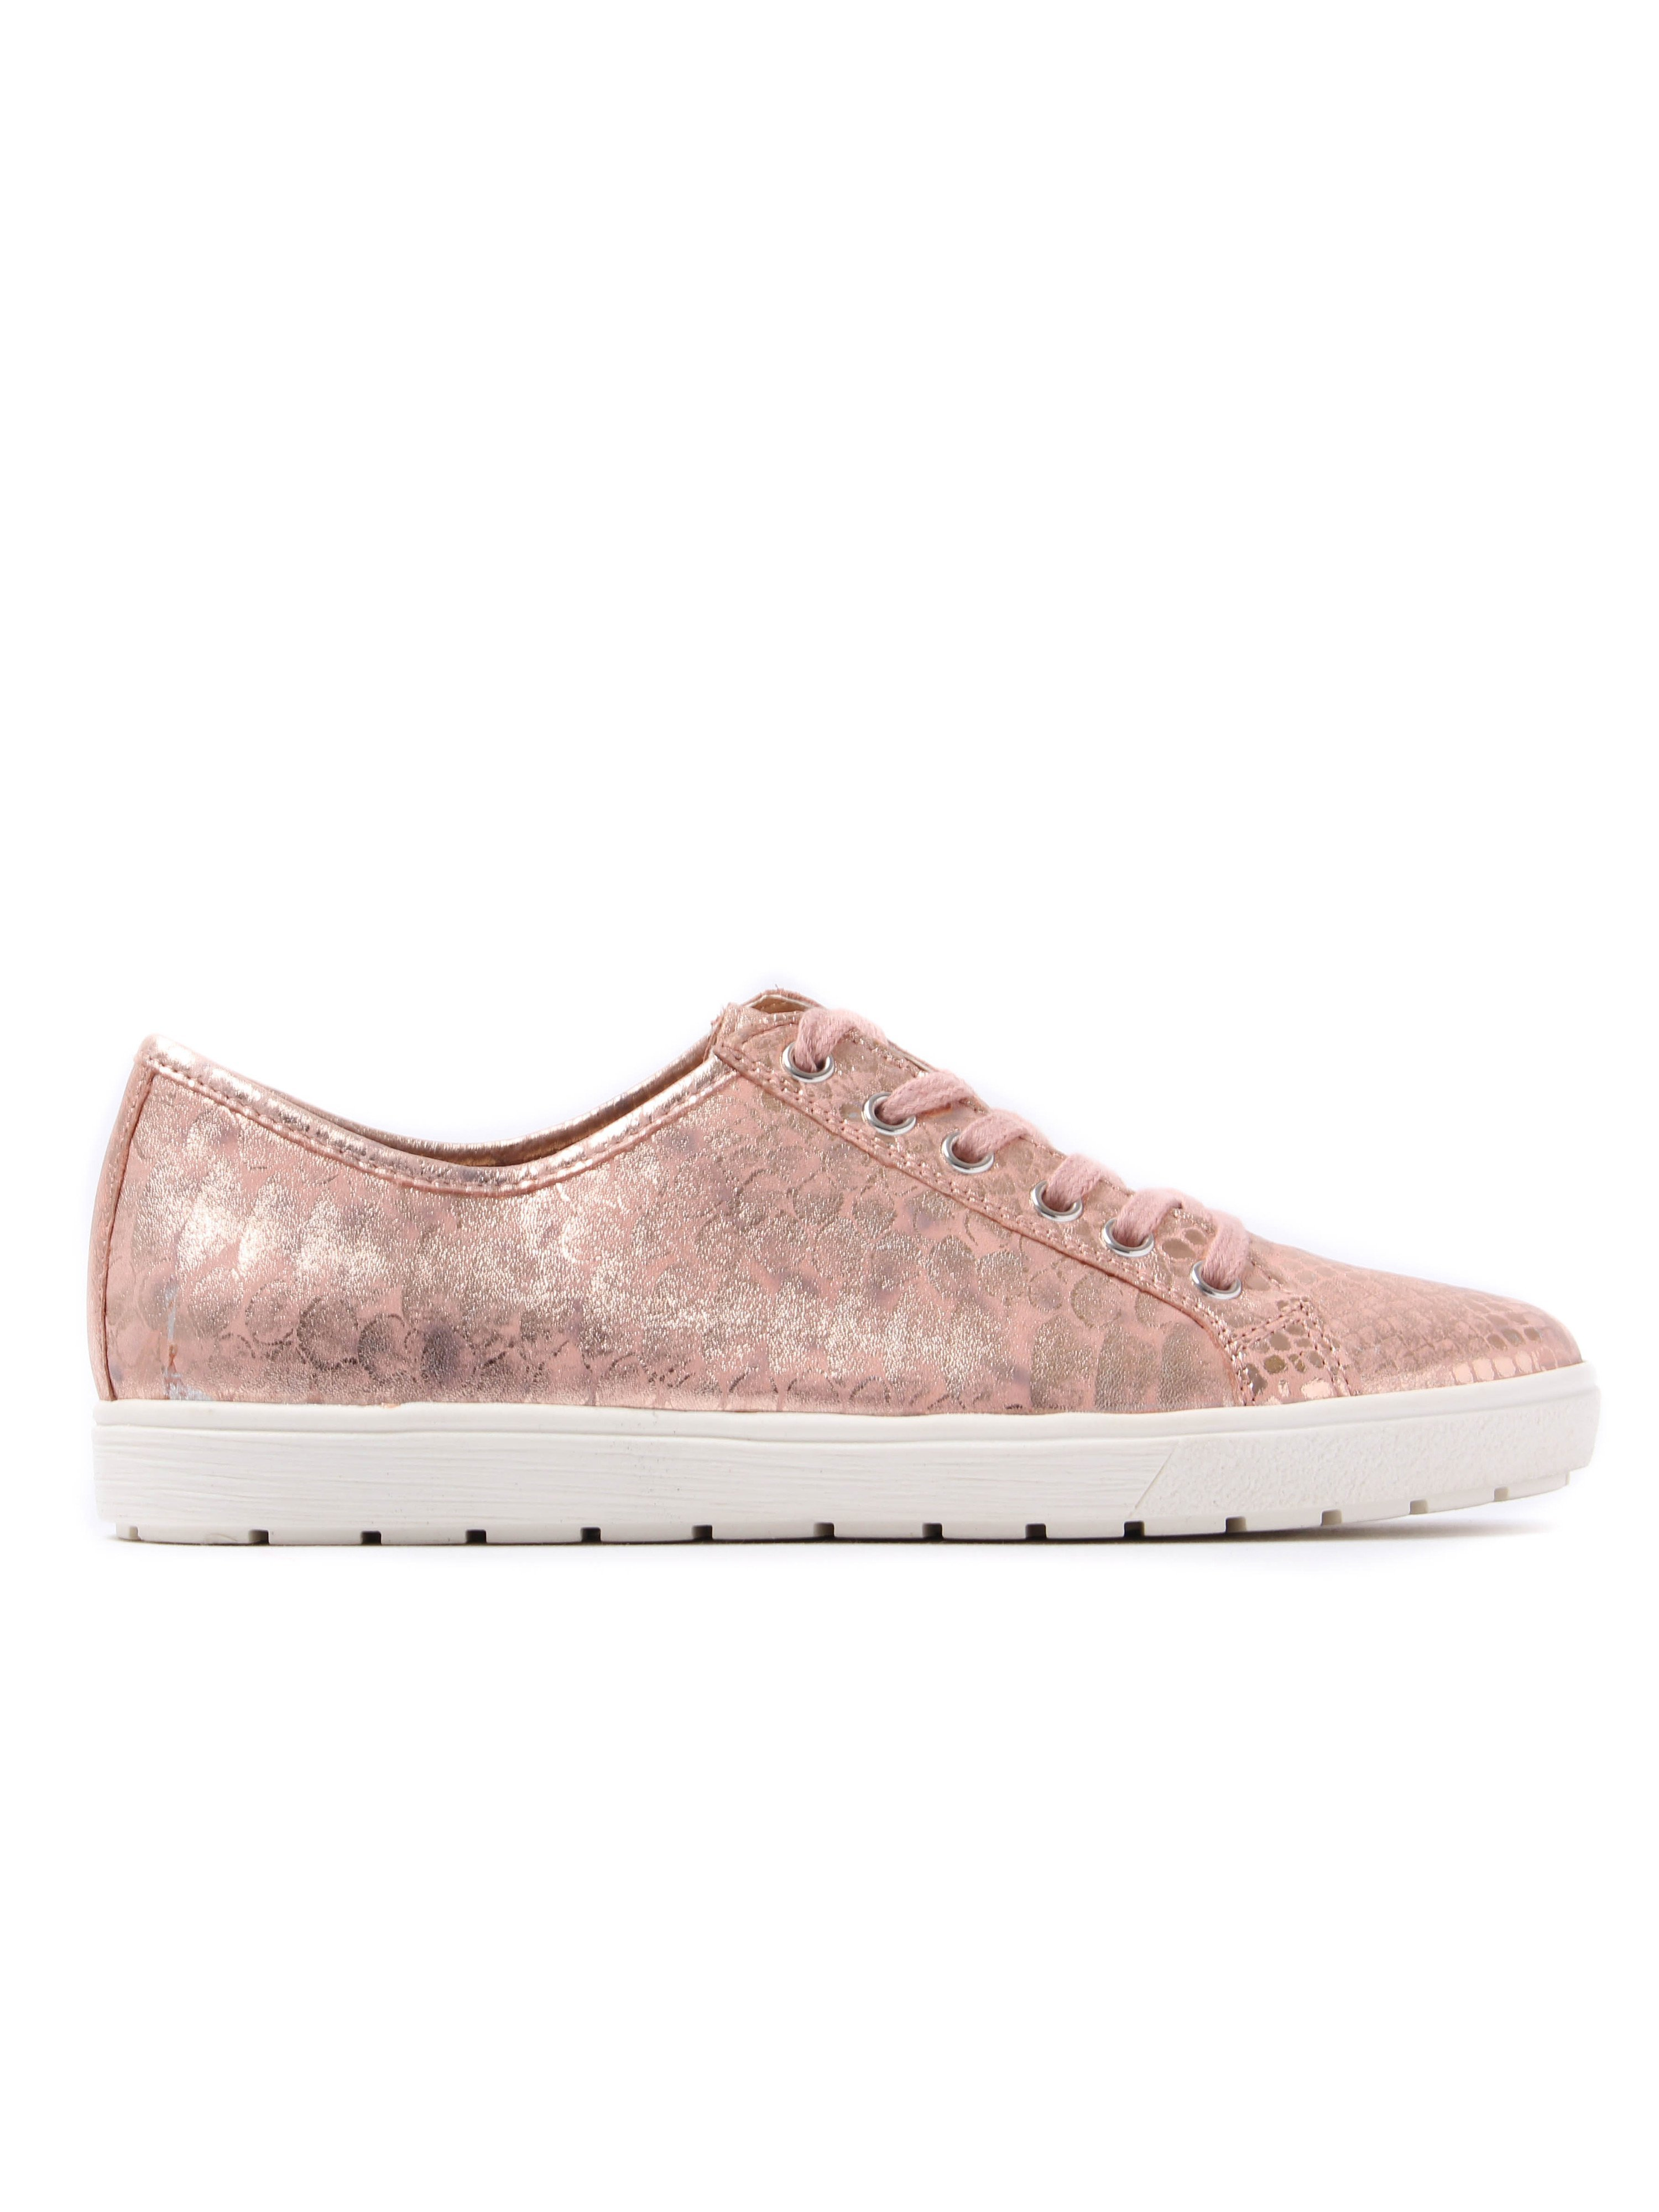 Caprice Women's Snake Effect Leather Trainers Rose Metallic